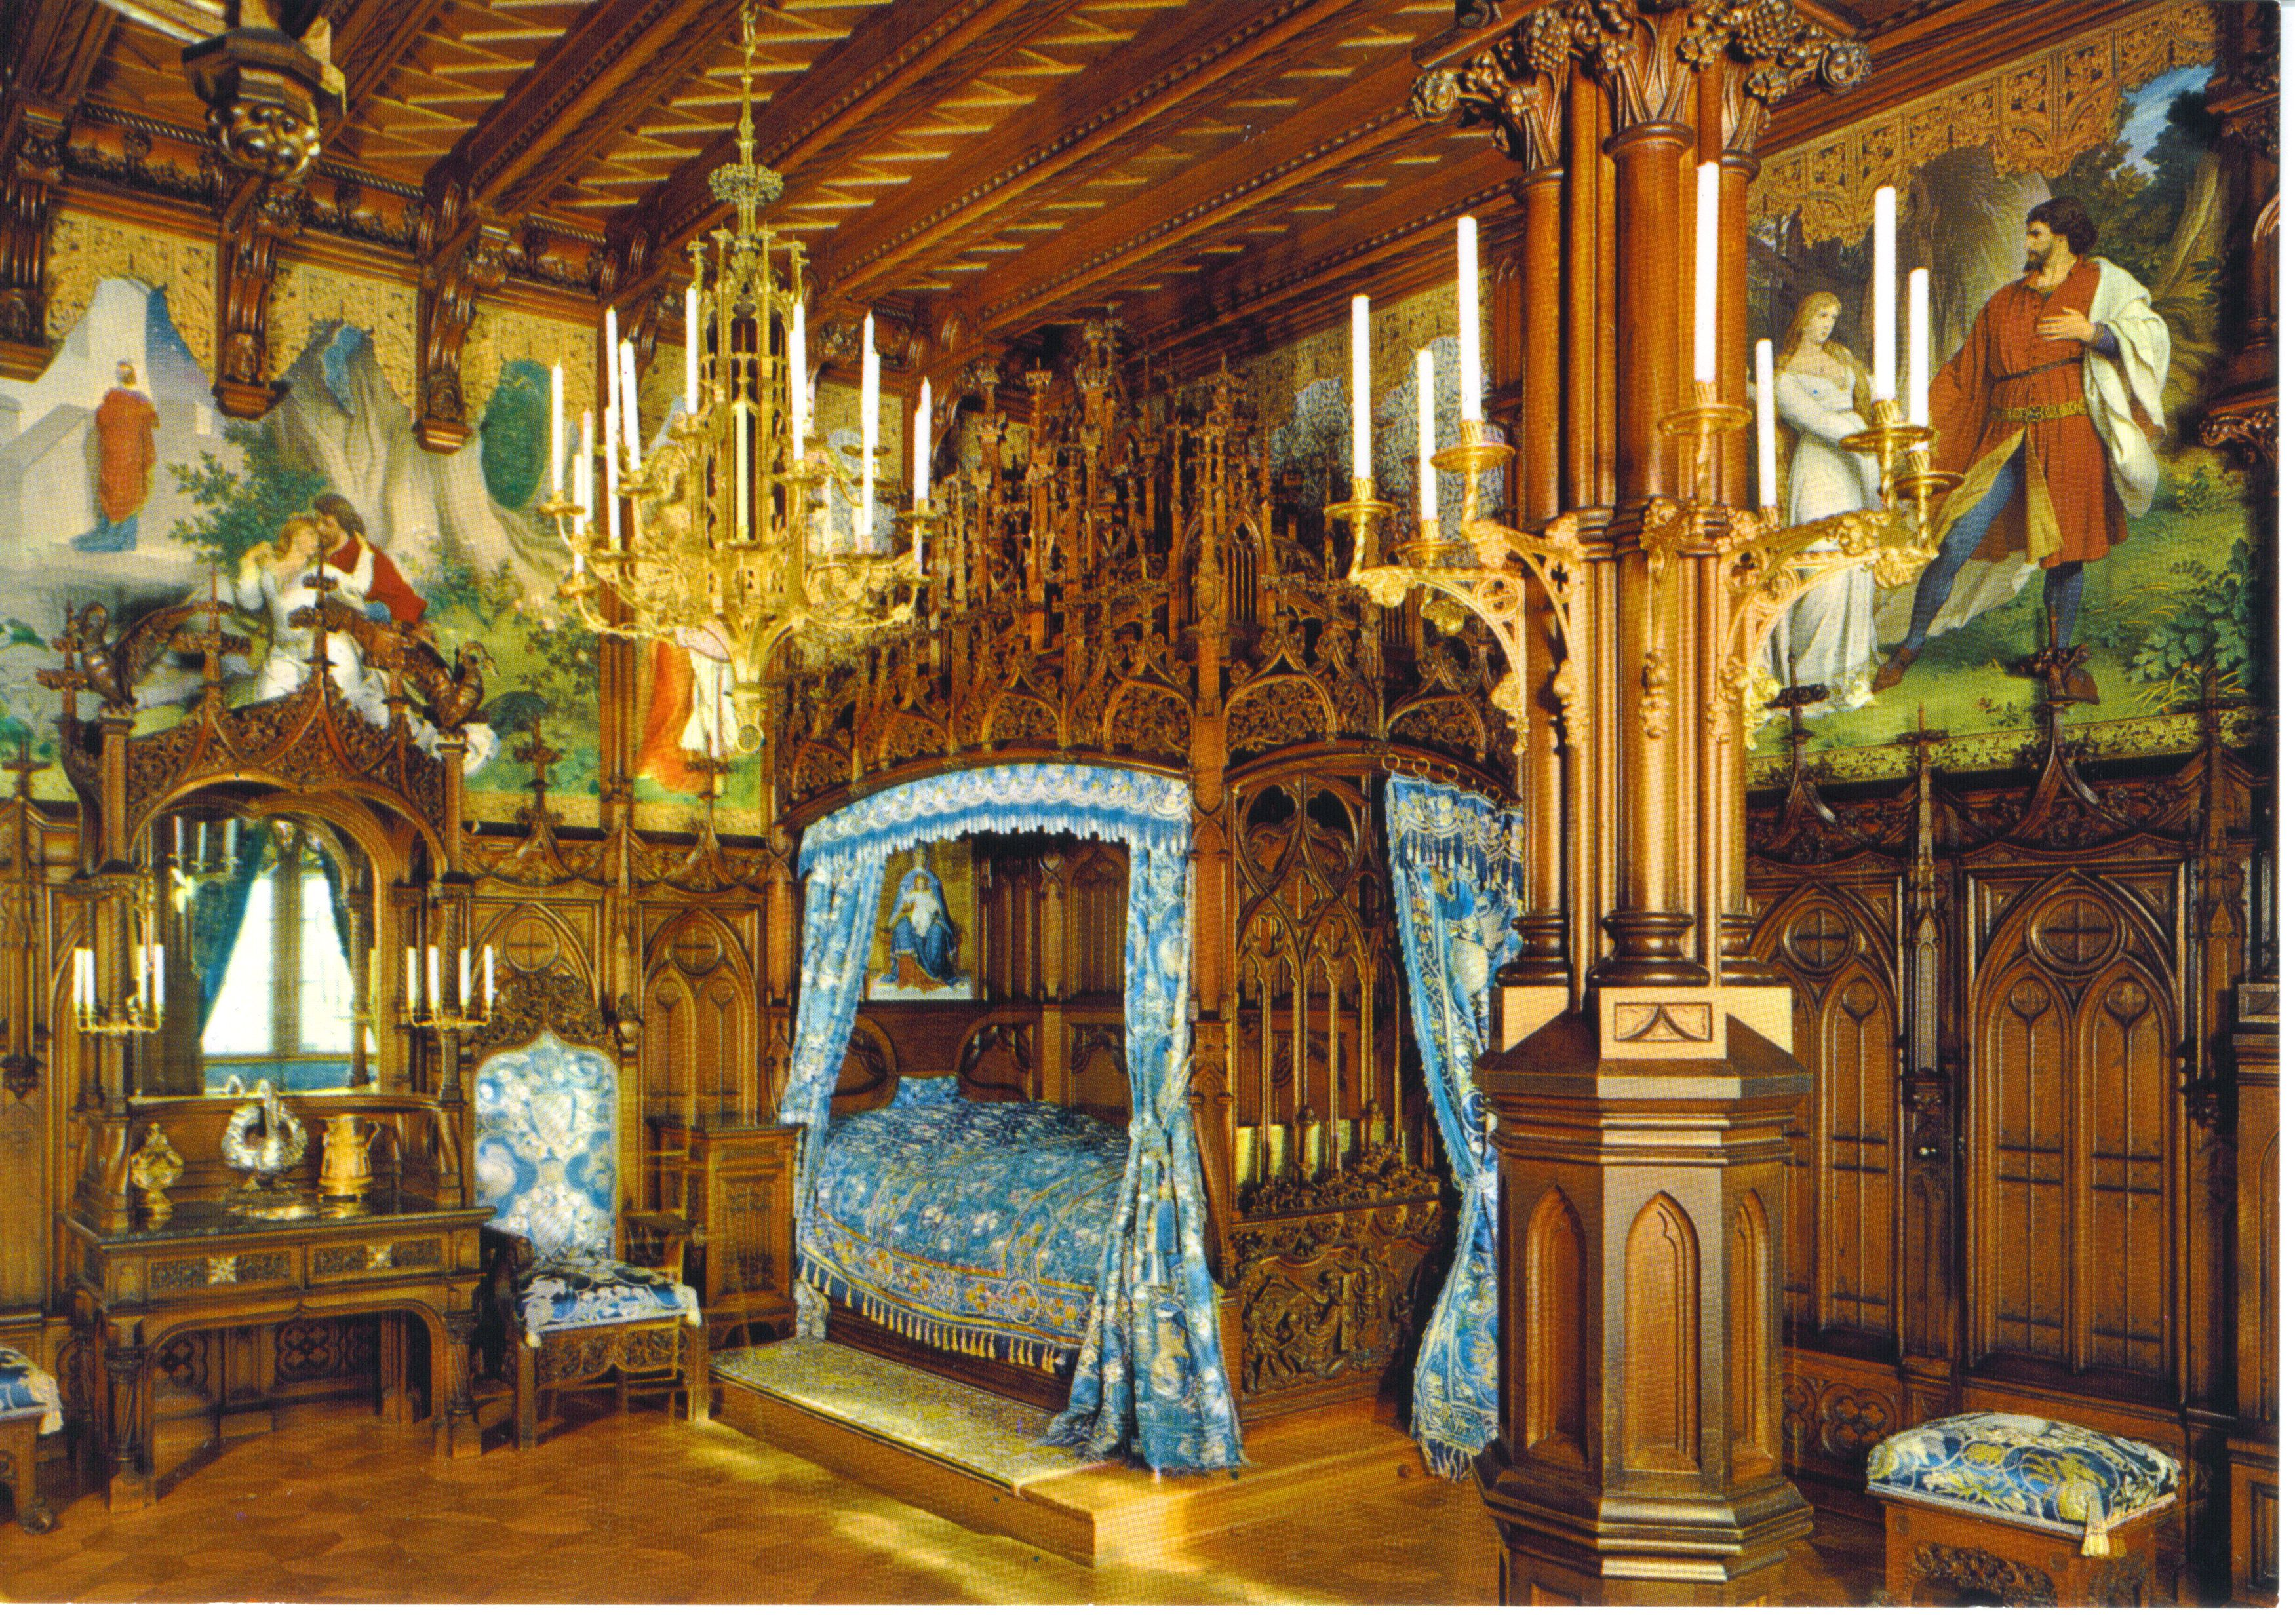 King Ludwigs Castle Neuschwanstein ~ Royal Bedroom - I loved this